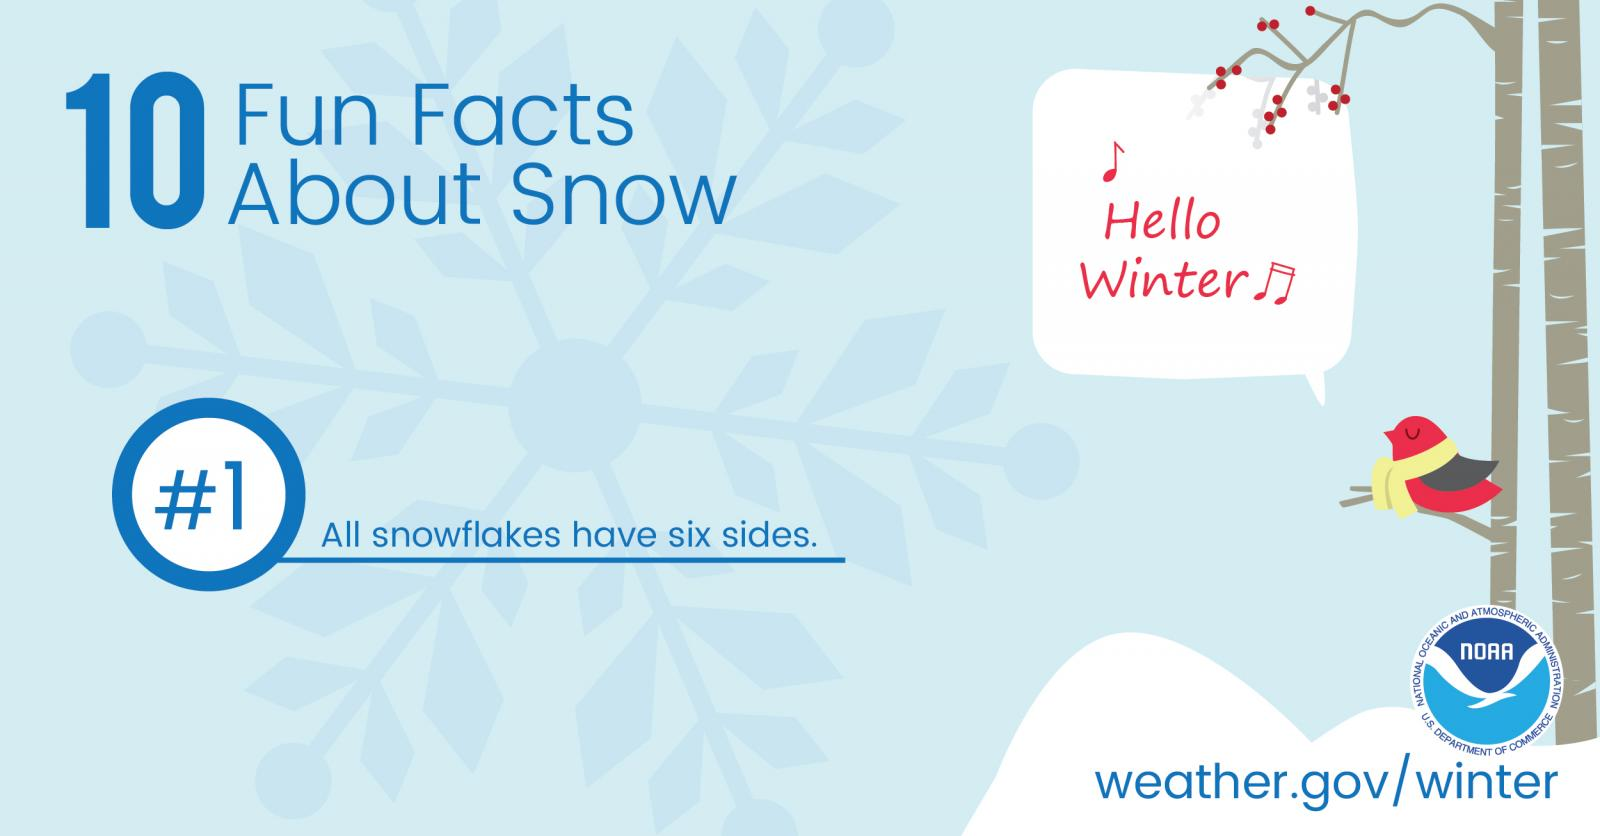 10 Fun Facts About Snow: #1. All snowflakes have six sides.